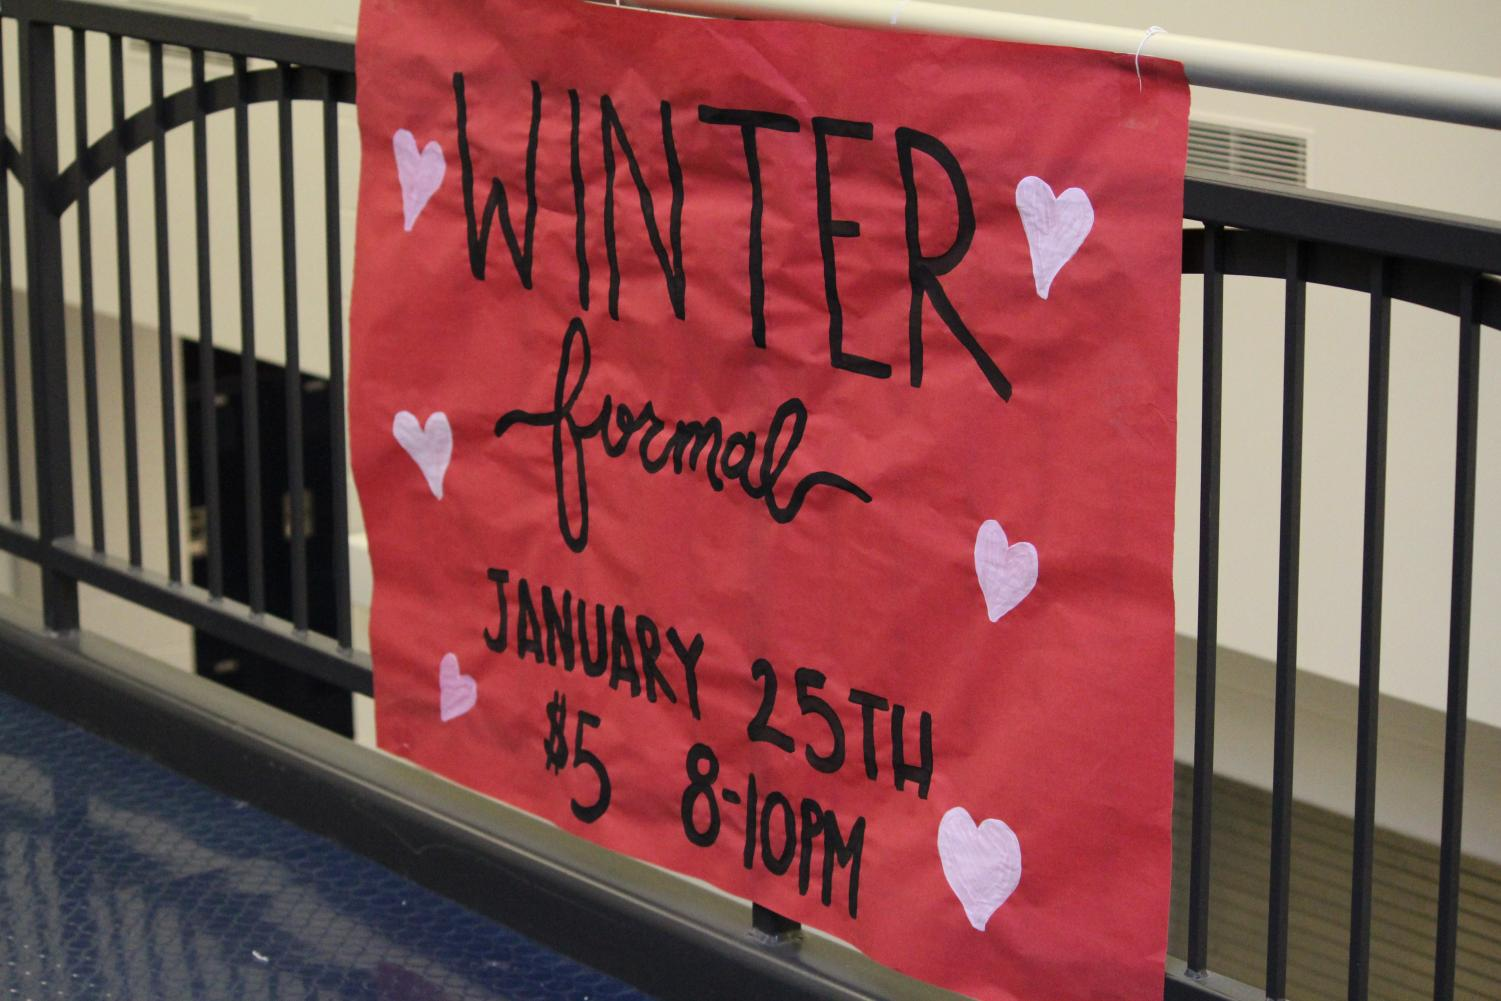 Winter Formal is rescheduled for sometime in early February.